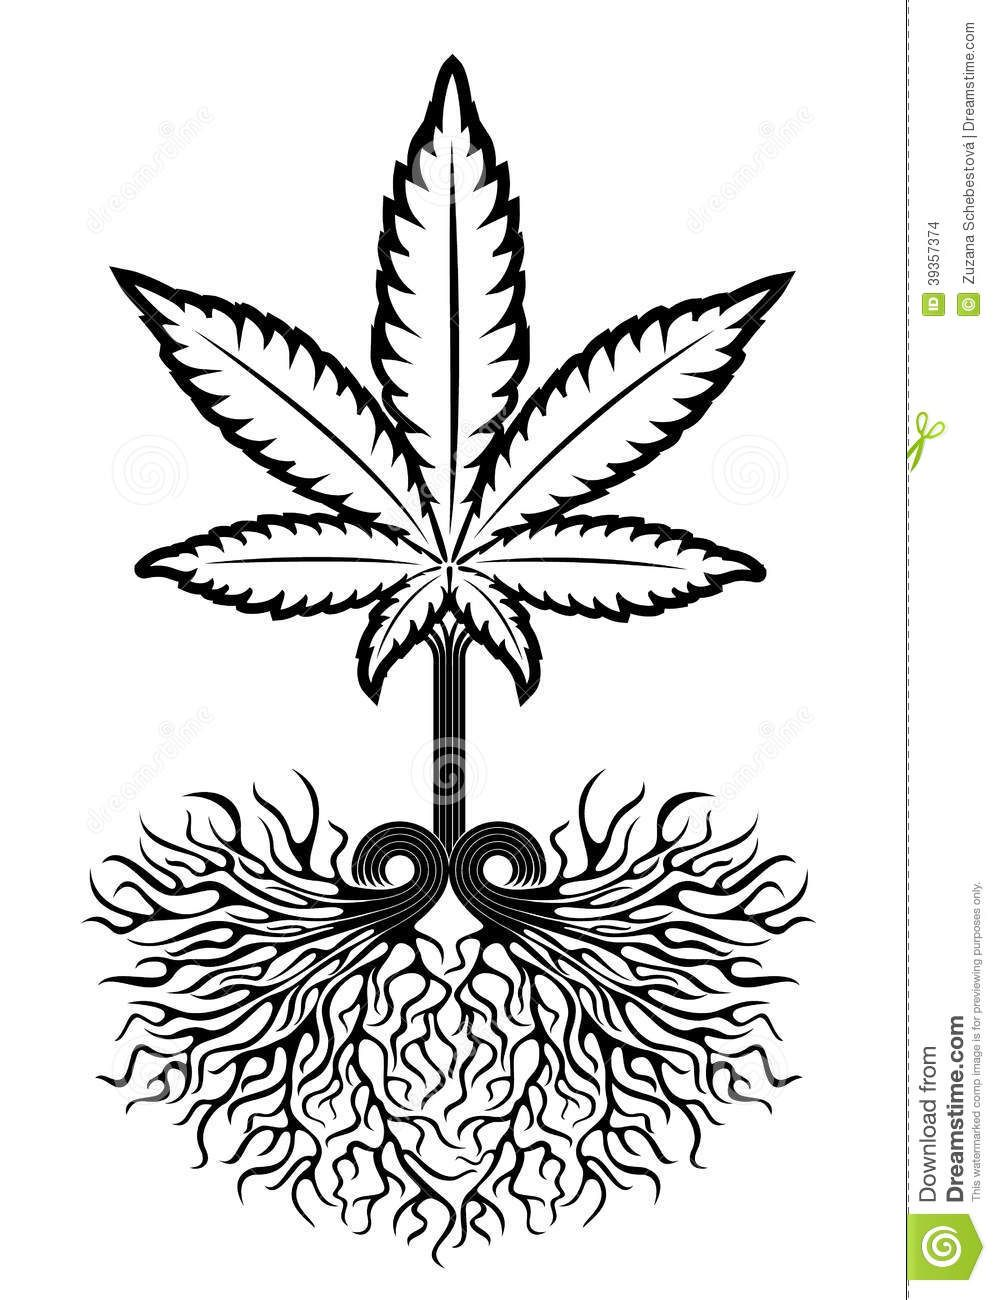 Medical marijuana leaf symbol download from over 37 million high medical marijuana leaf symbol download from over 37 million high quality stock photos images biocorpaavc Gallery